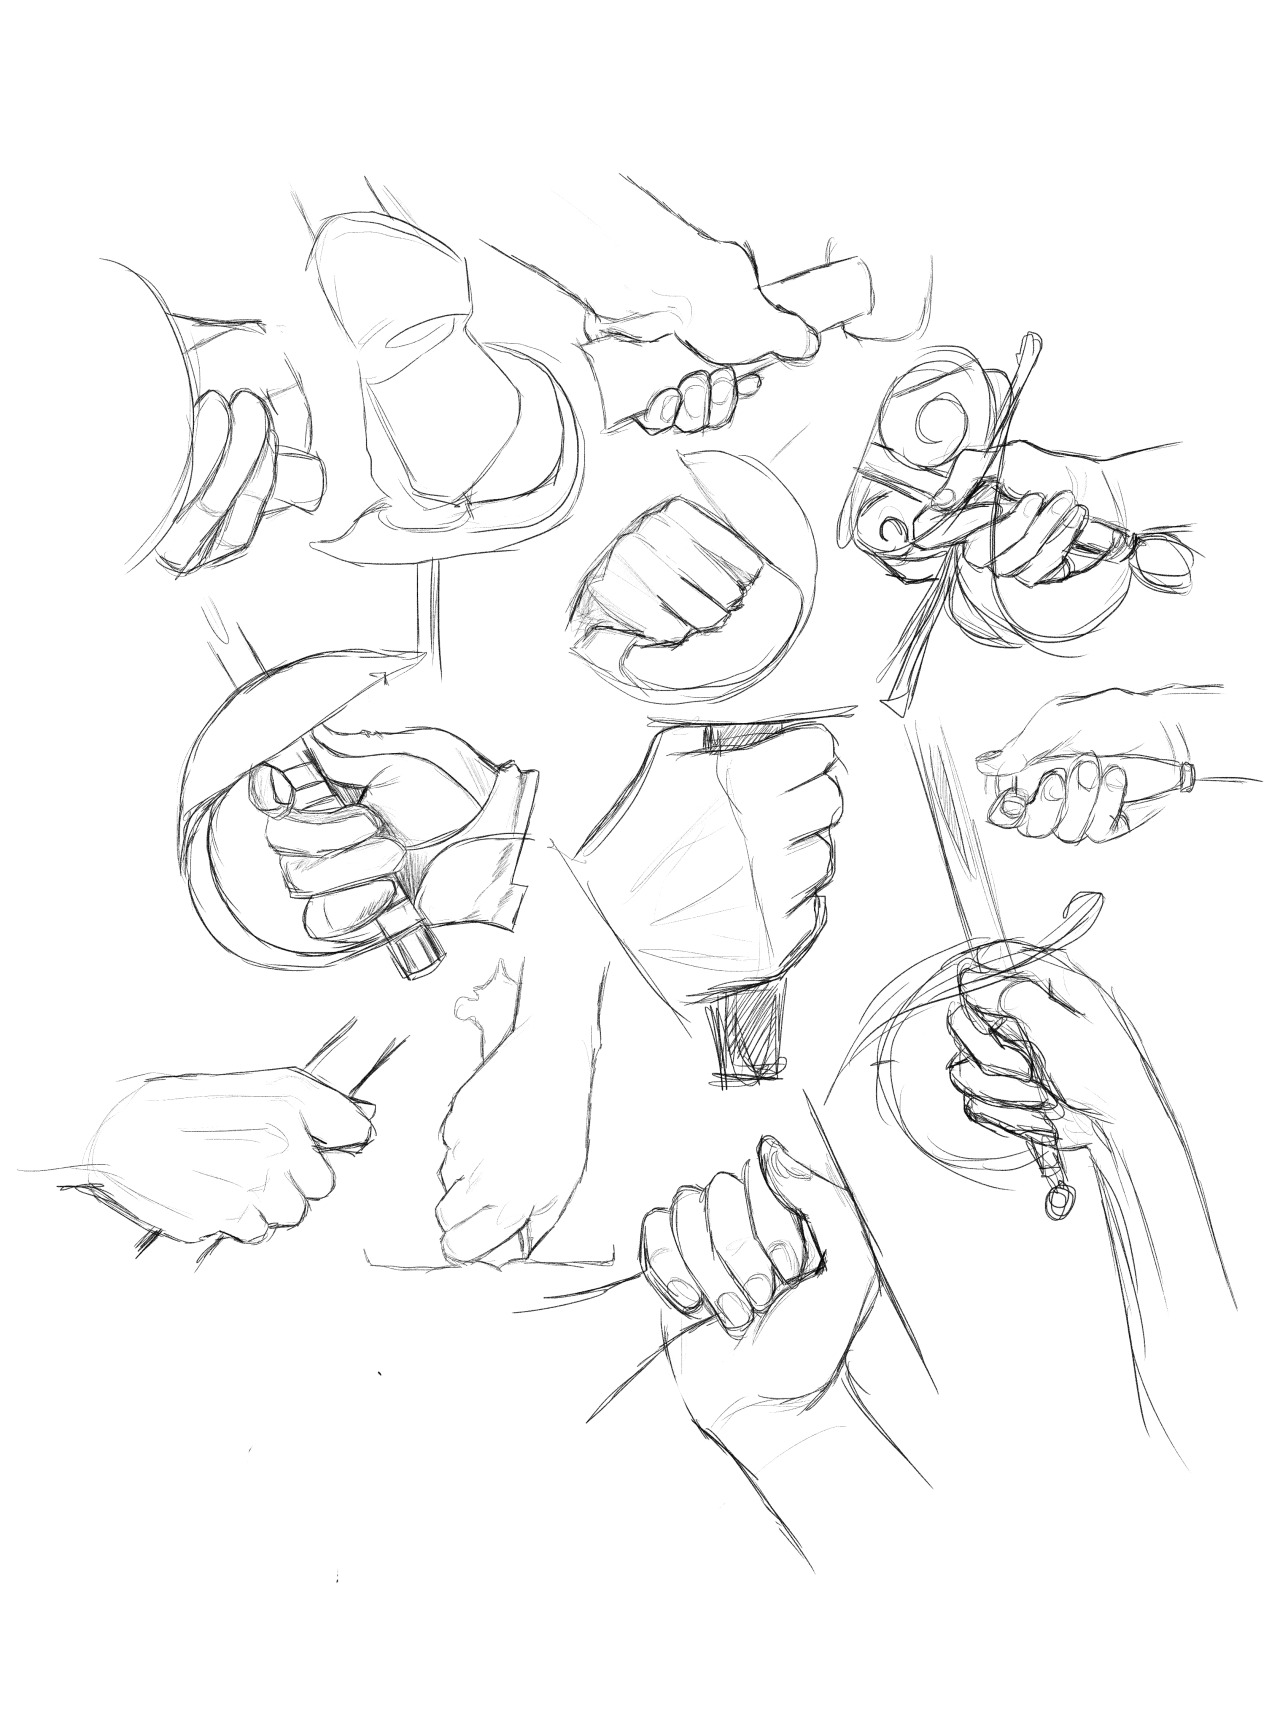 How To Draw Hand Holding : holding, Hands, Holding, Learn